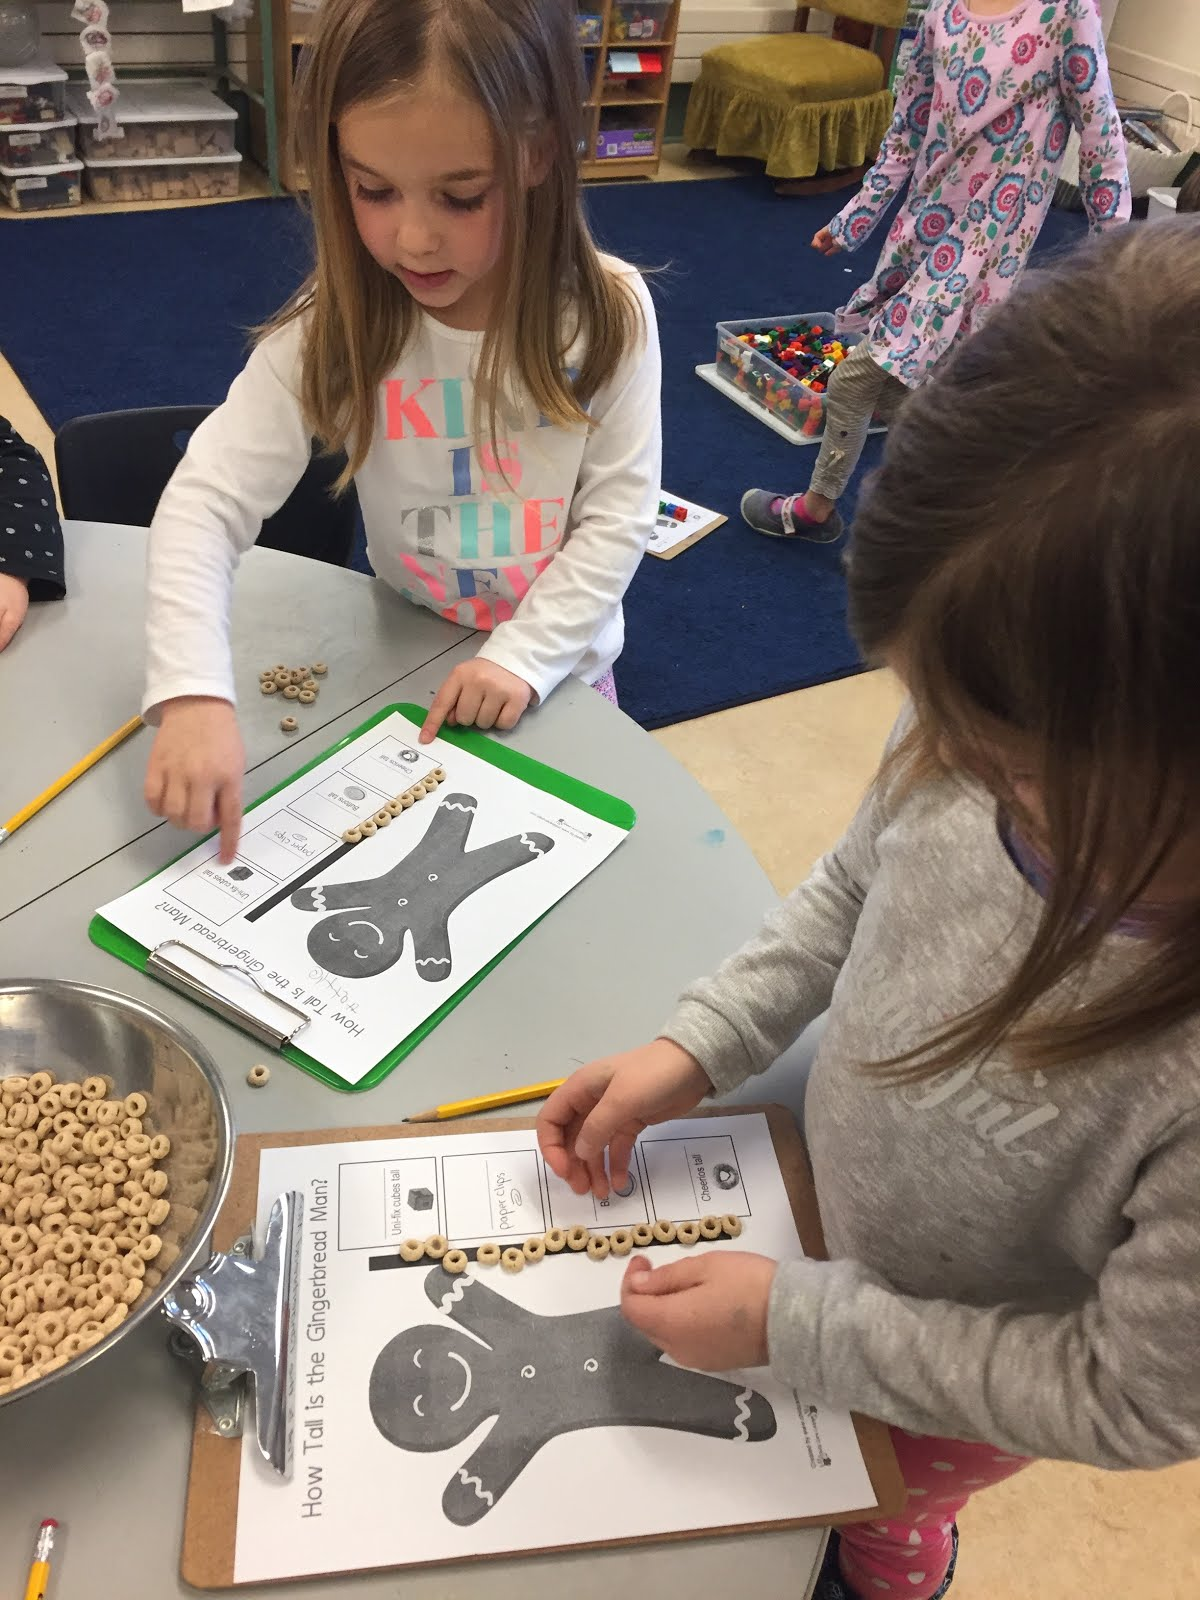 Measuring with Cheerio's